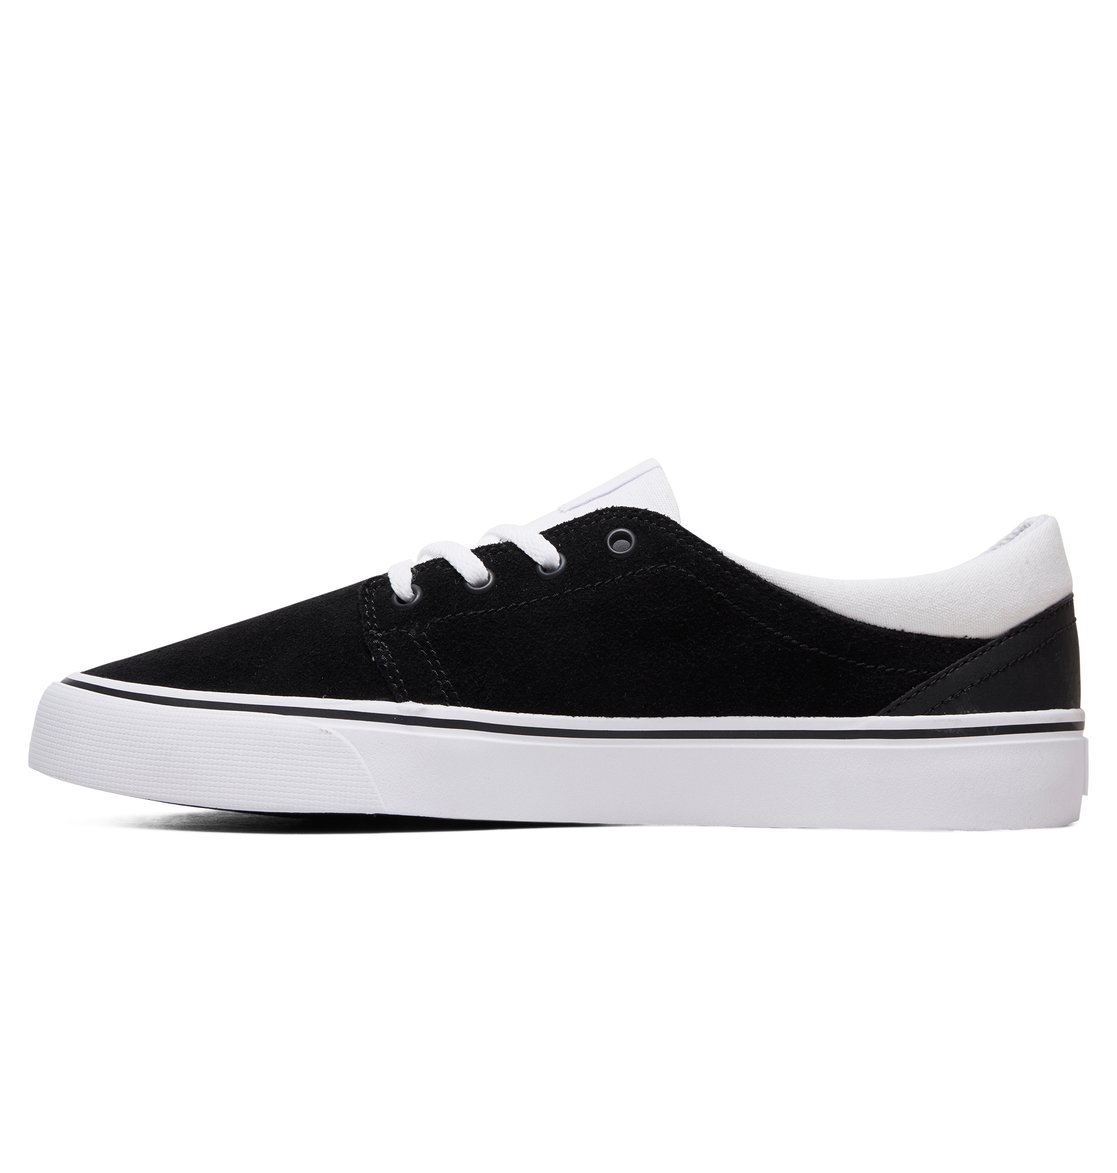 2 Trase SD Shoes Black ADYS300172 DC Shoes 821d2ed726